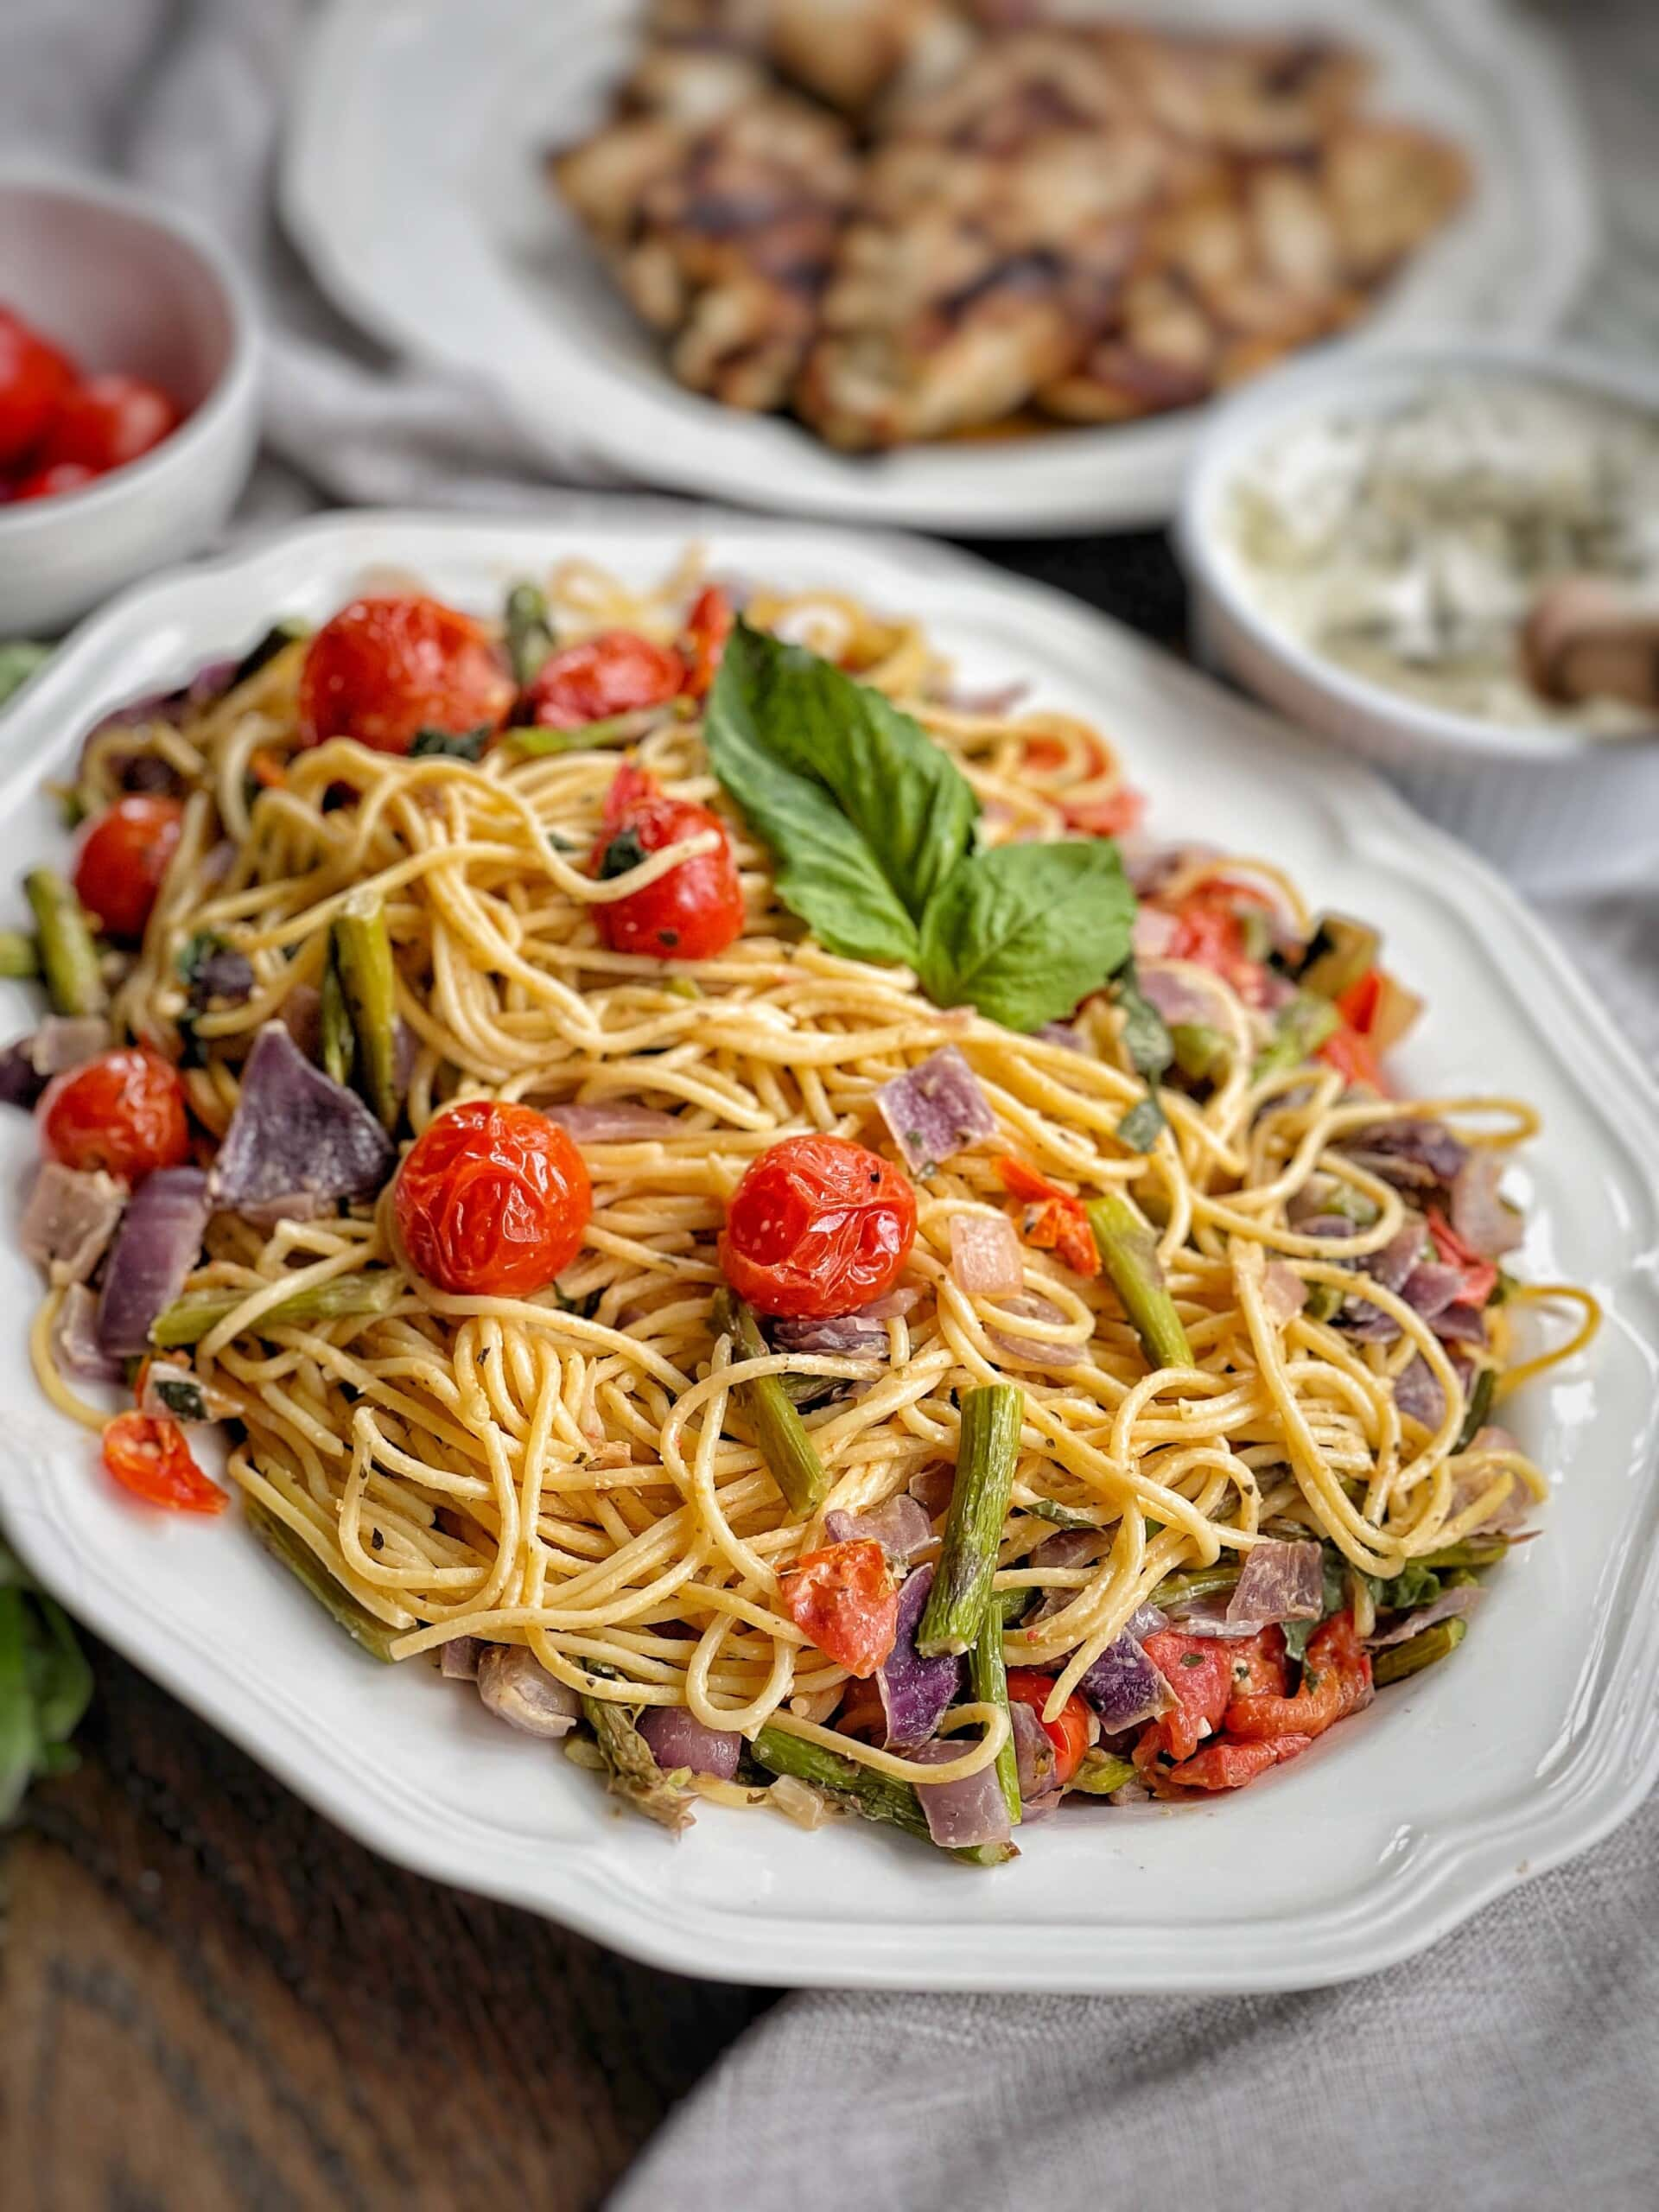 spaghetti with roasted vegetables